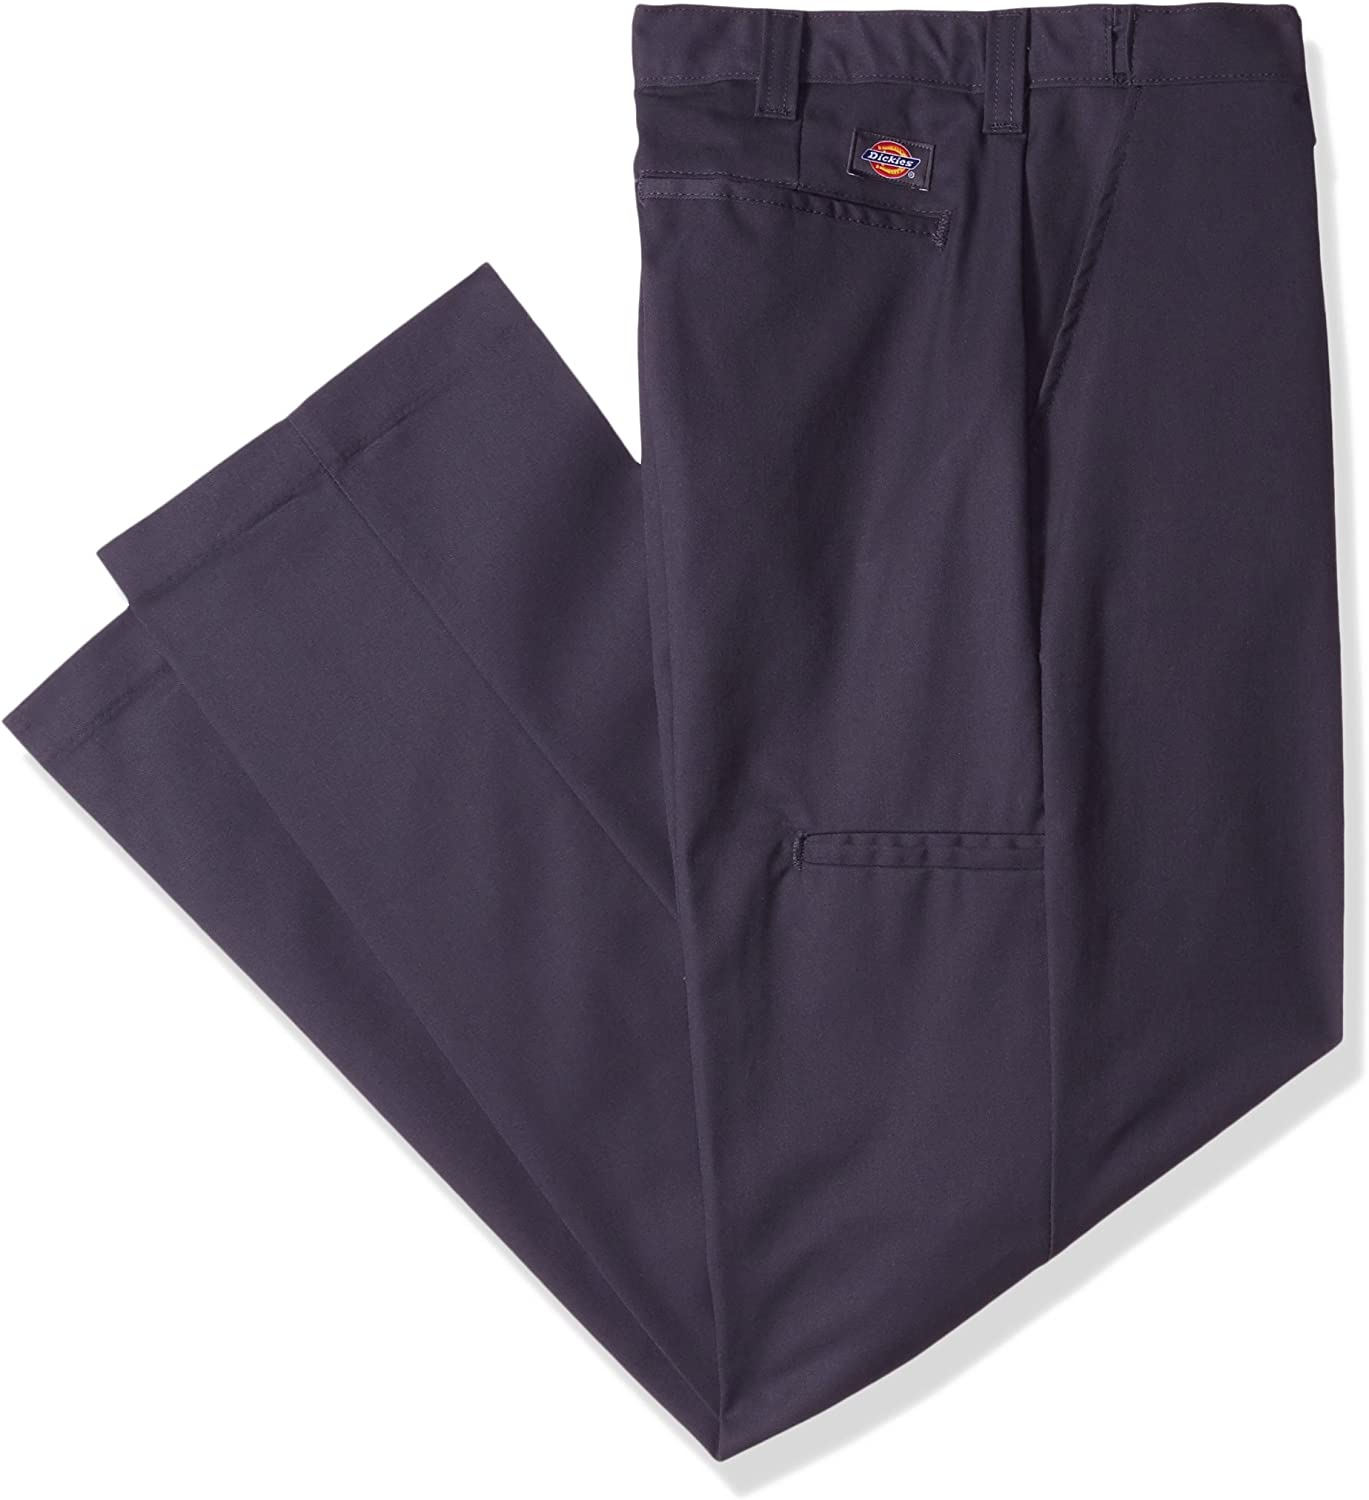 Dickies Charcoal Industrial Relaxed Fit Straight Leg Comfort Waist Pants LP700DC